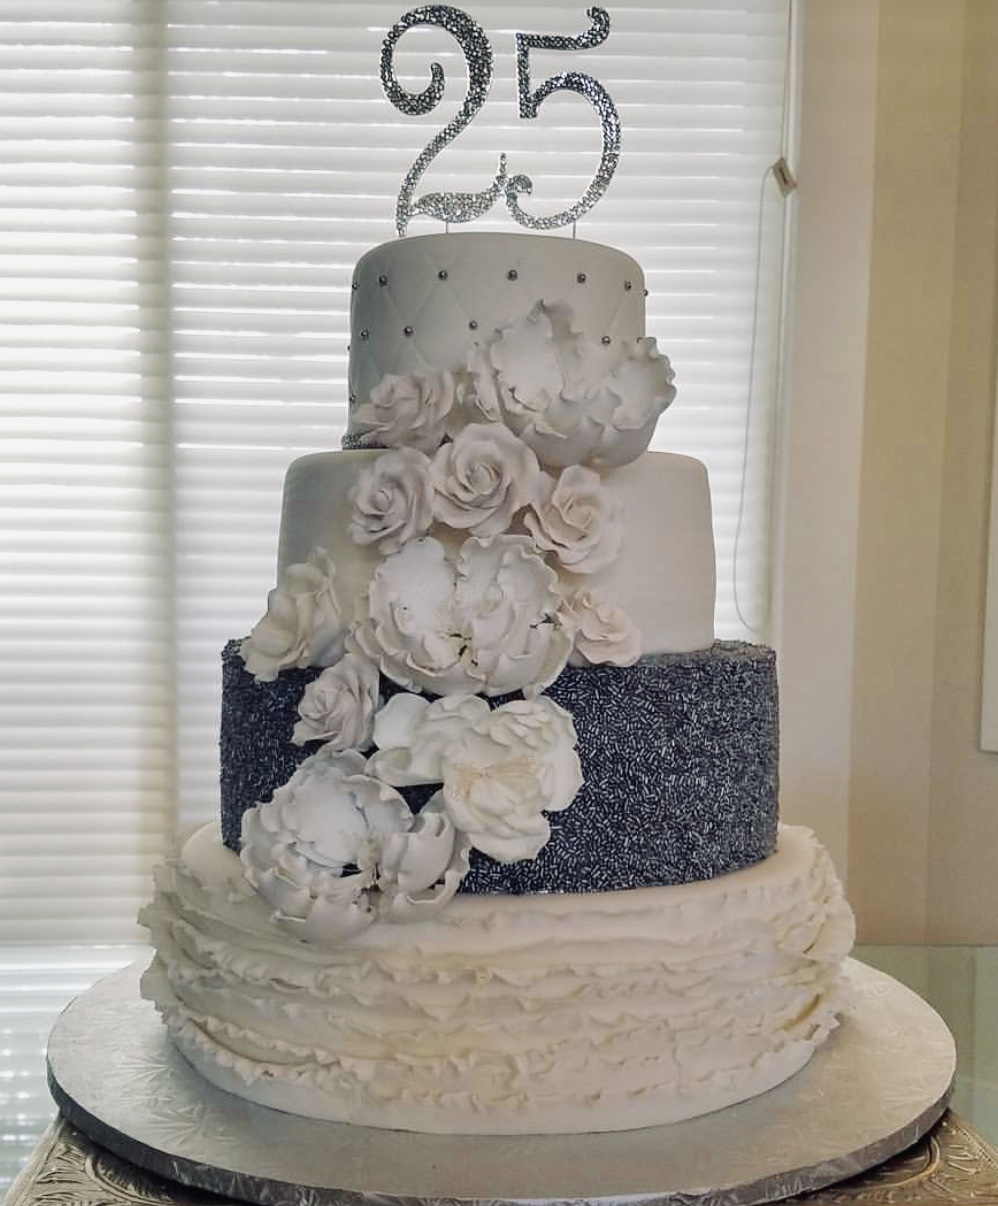 Cake By Cary Miami Usa Cakes By Cary Customs Cakes For